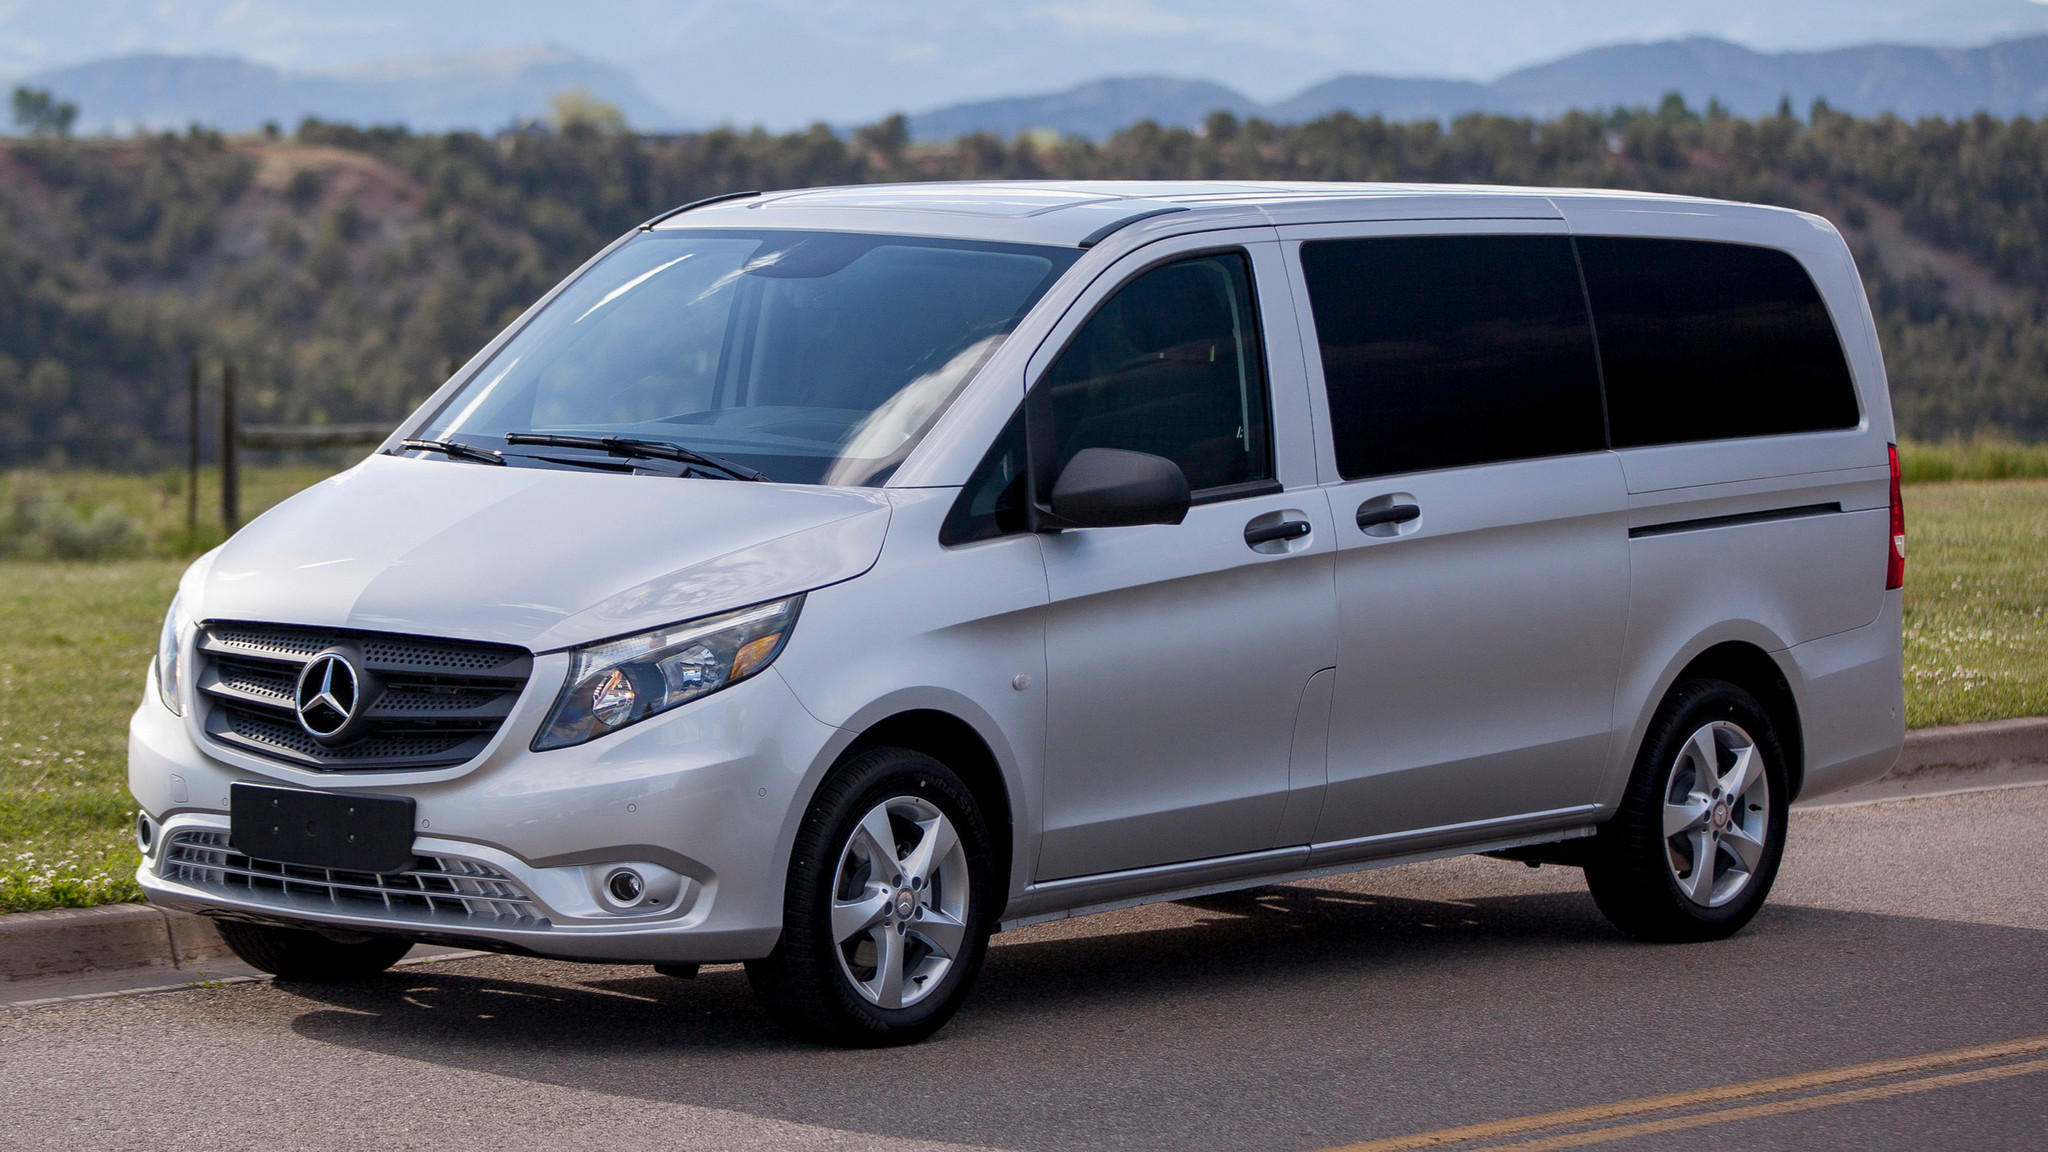 mercedes benz metris the most affordable mercedes on the road la times. Black Bedroom Furniture Sets. Home Design Ideas